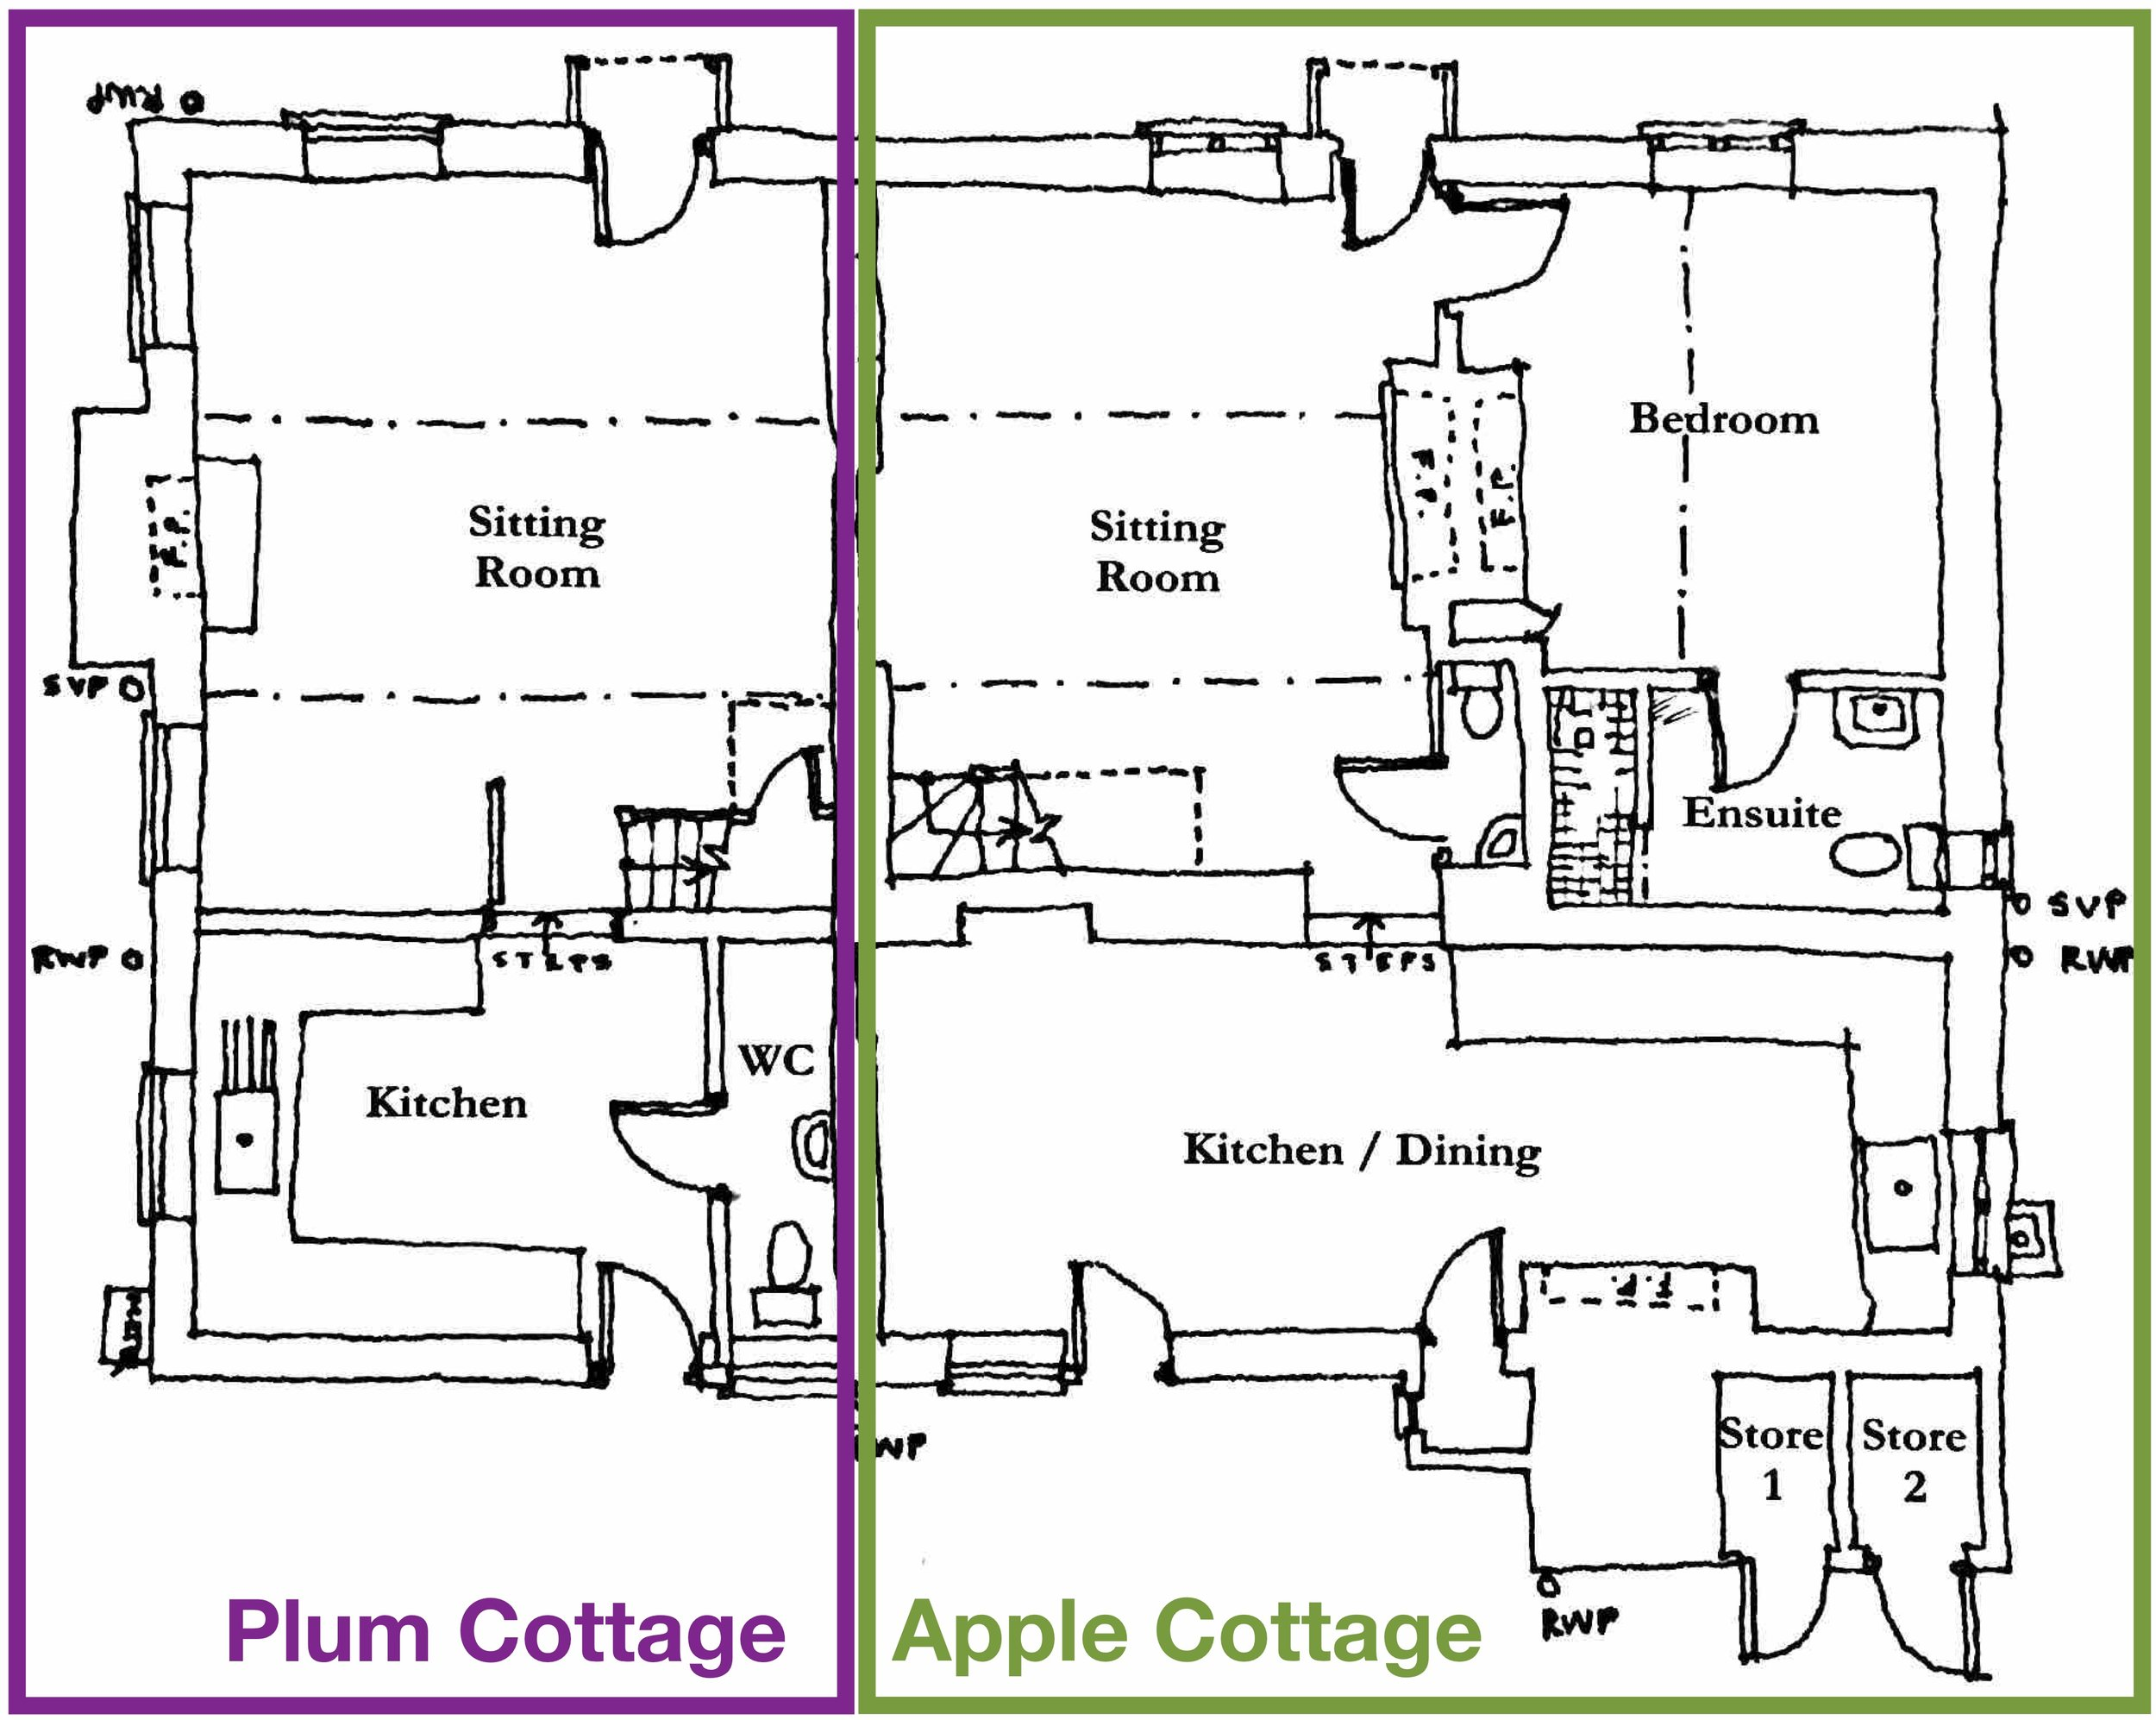 Cottages Floor Plan.jpg